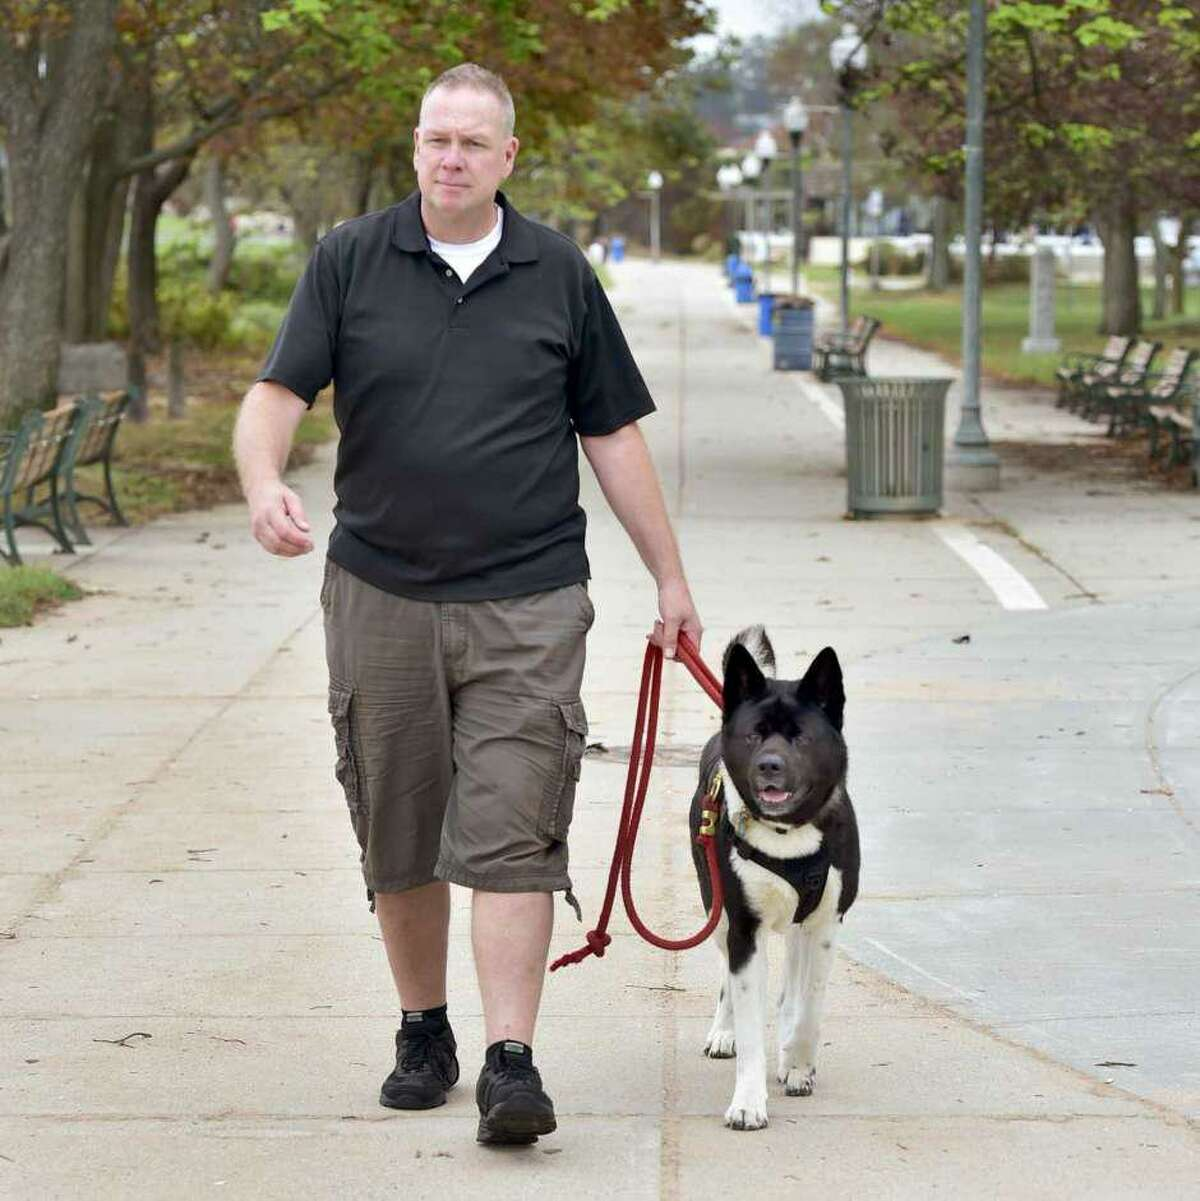 In this file photo, Bradford Cole of Milford, K9 First Responders executive director, walks Niko, his Akita breed dog, along the West Haven beach boardwalk. Cole is a believer in using 6-foot leashes that enable the dog handler to control their dog in unpredictable environments.